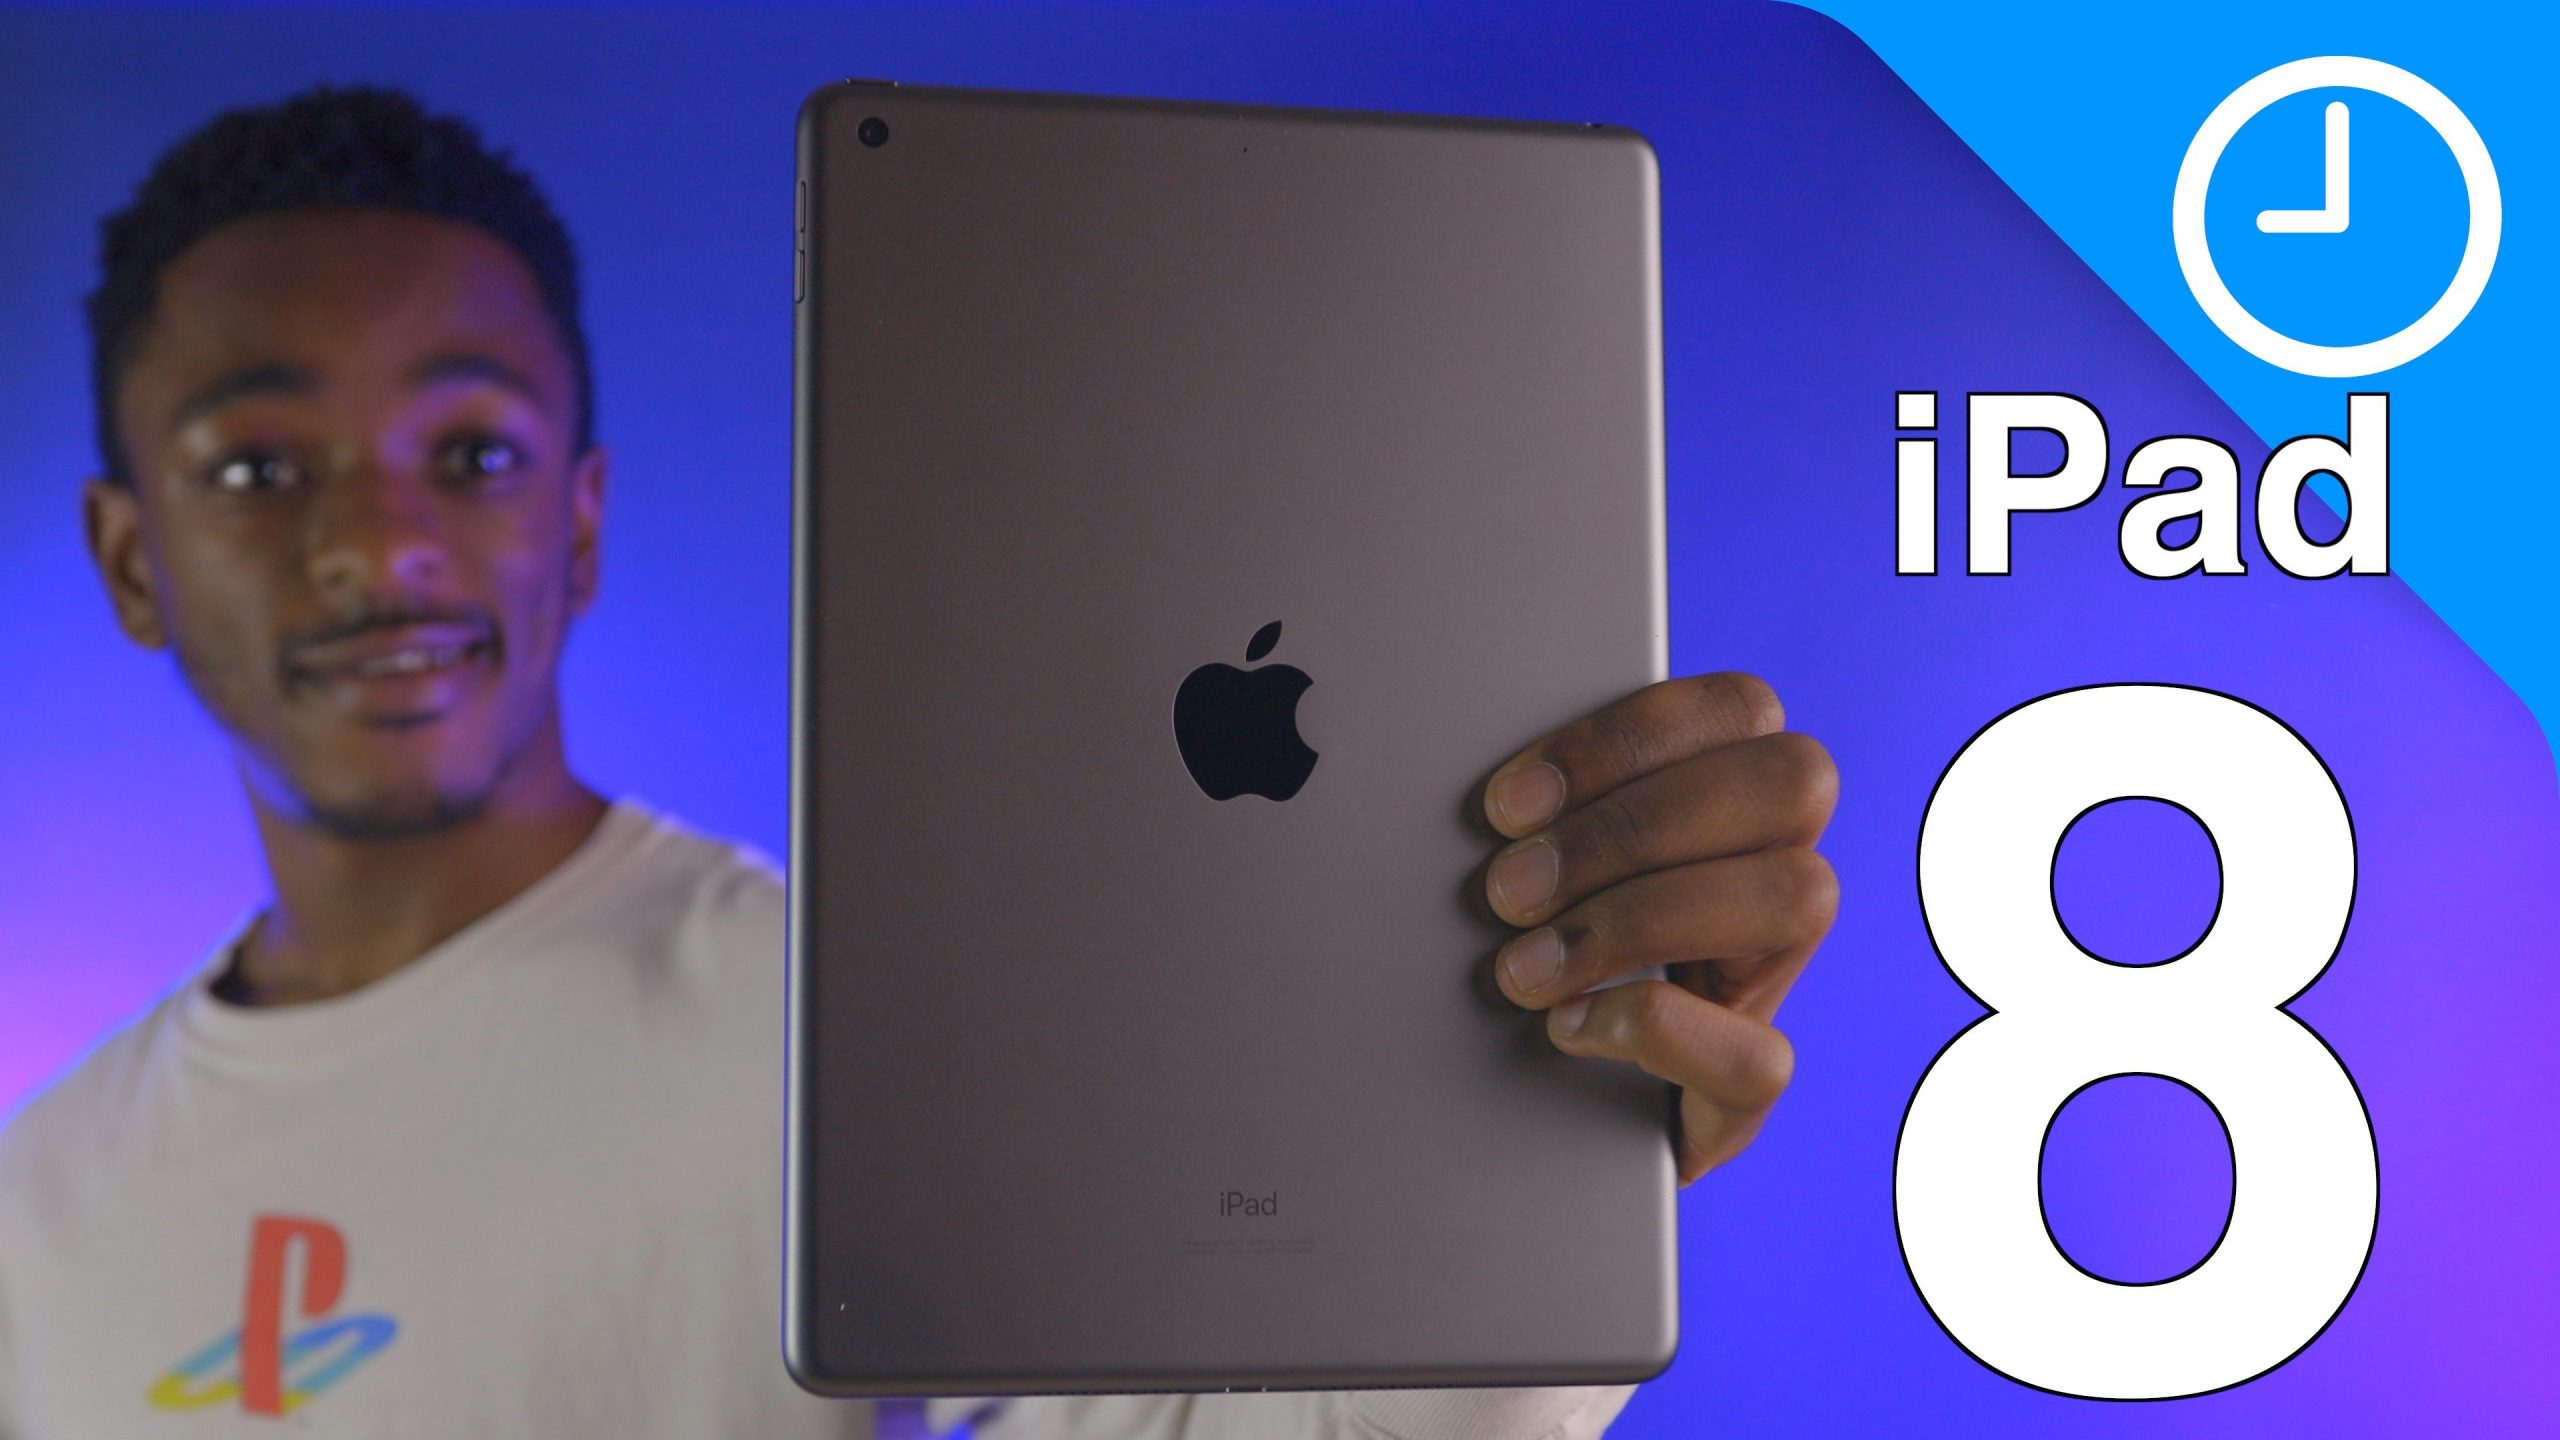 IPod 8 (2020) Unboxing + Review: Best Value iPod [Video]